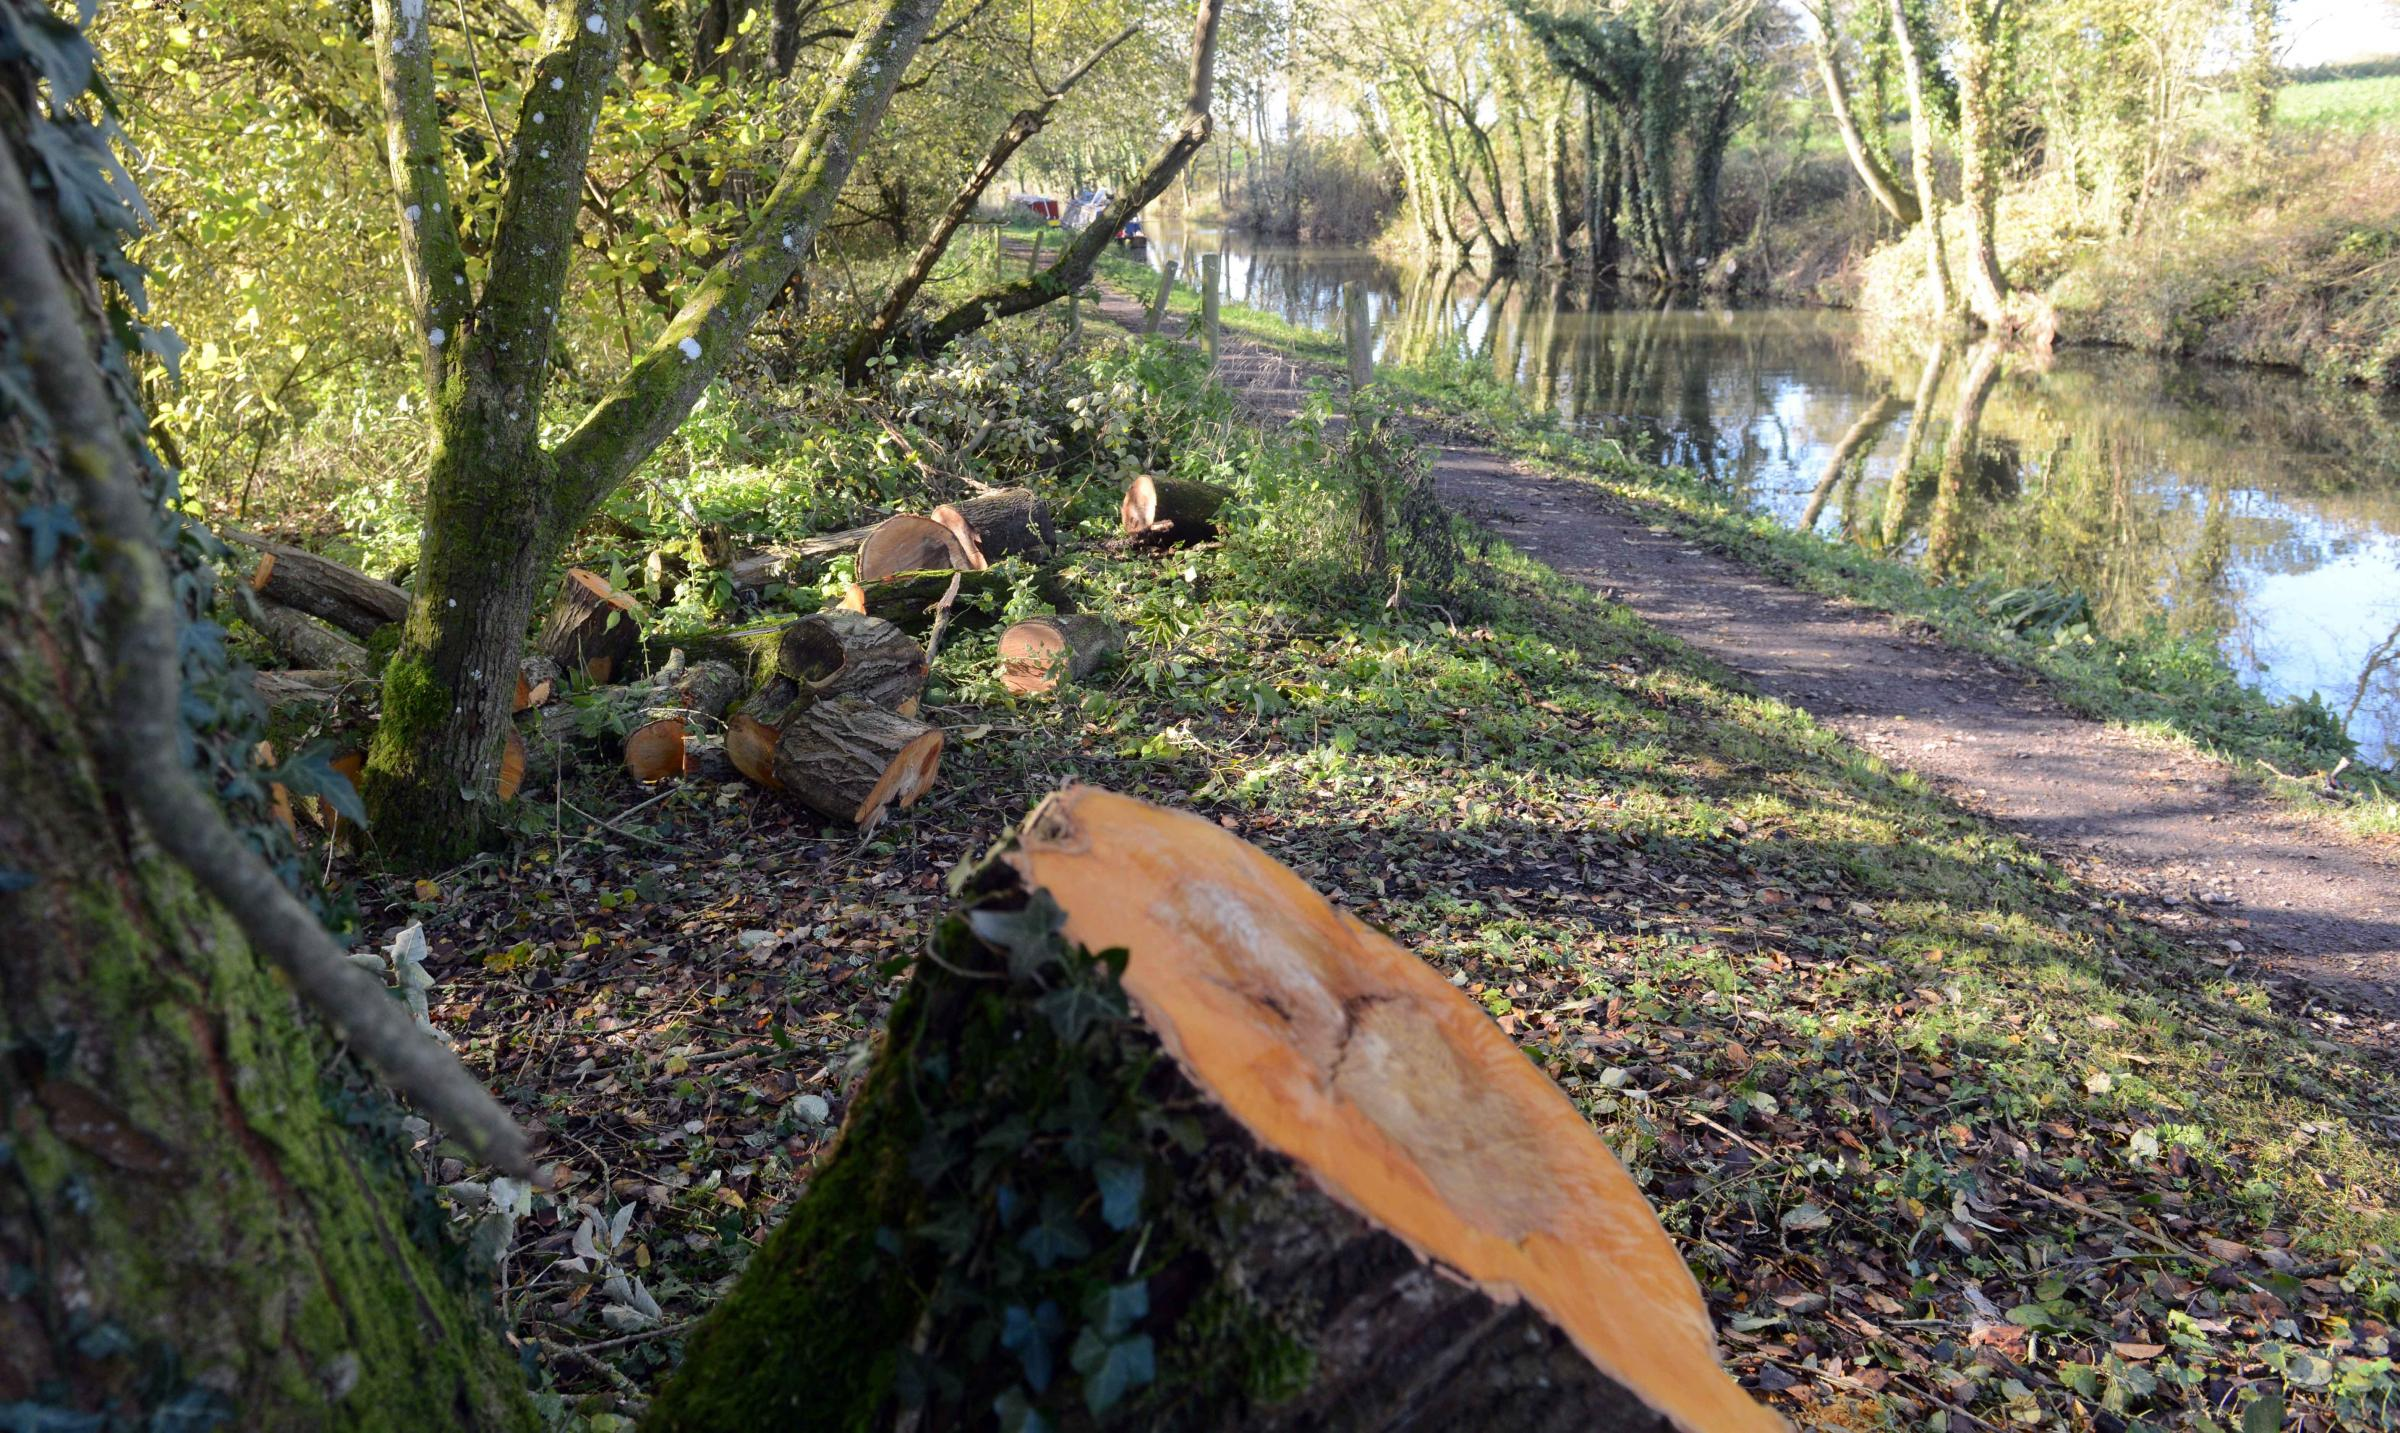 Trees cut down by the towpath at Milkhouse Water, Pewsey. Photo: Siobhan Boyle